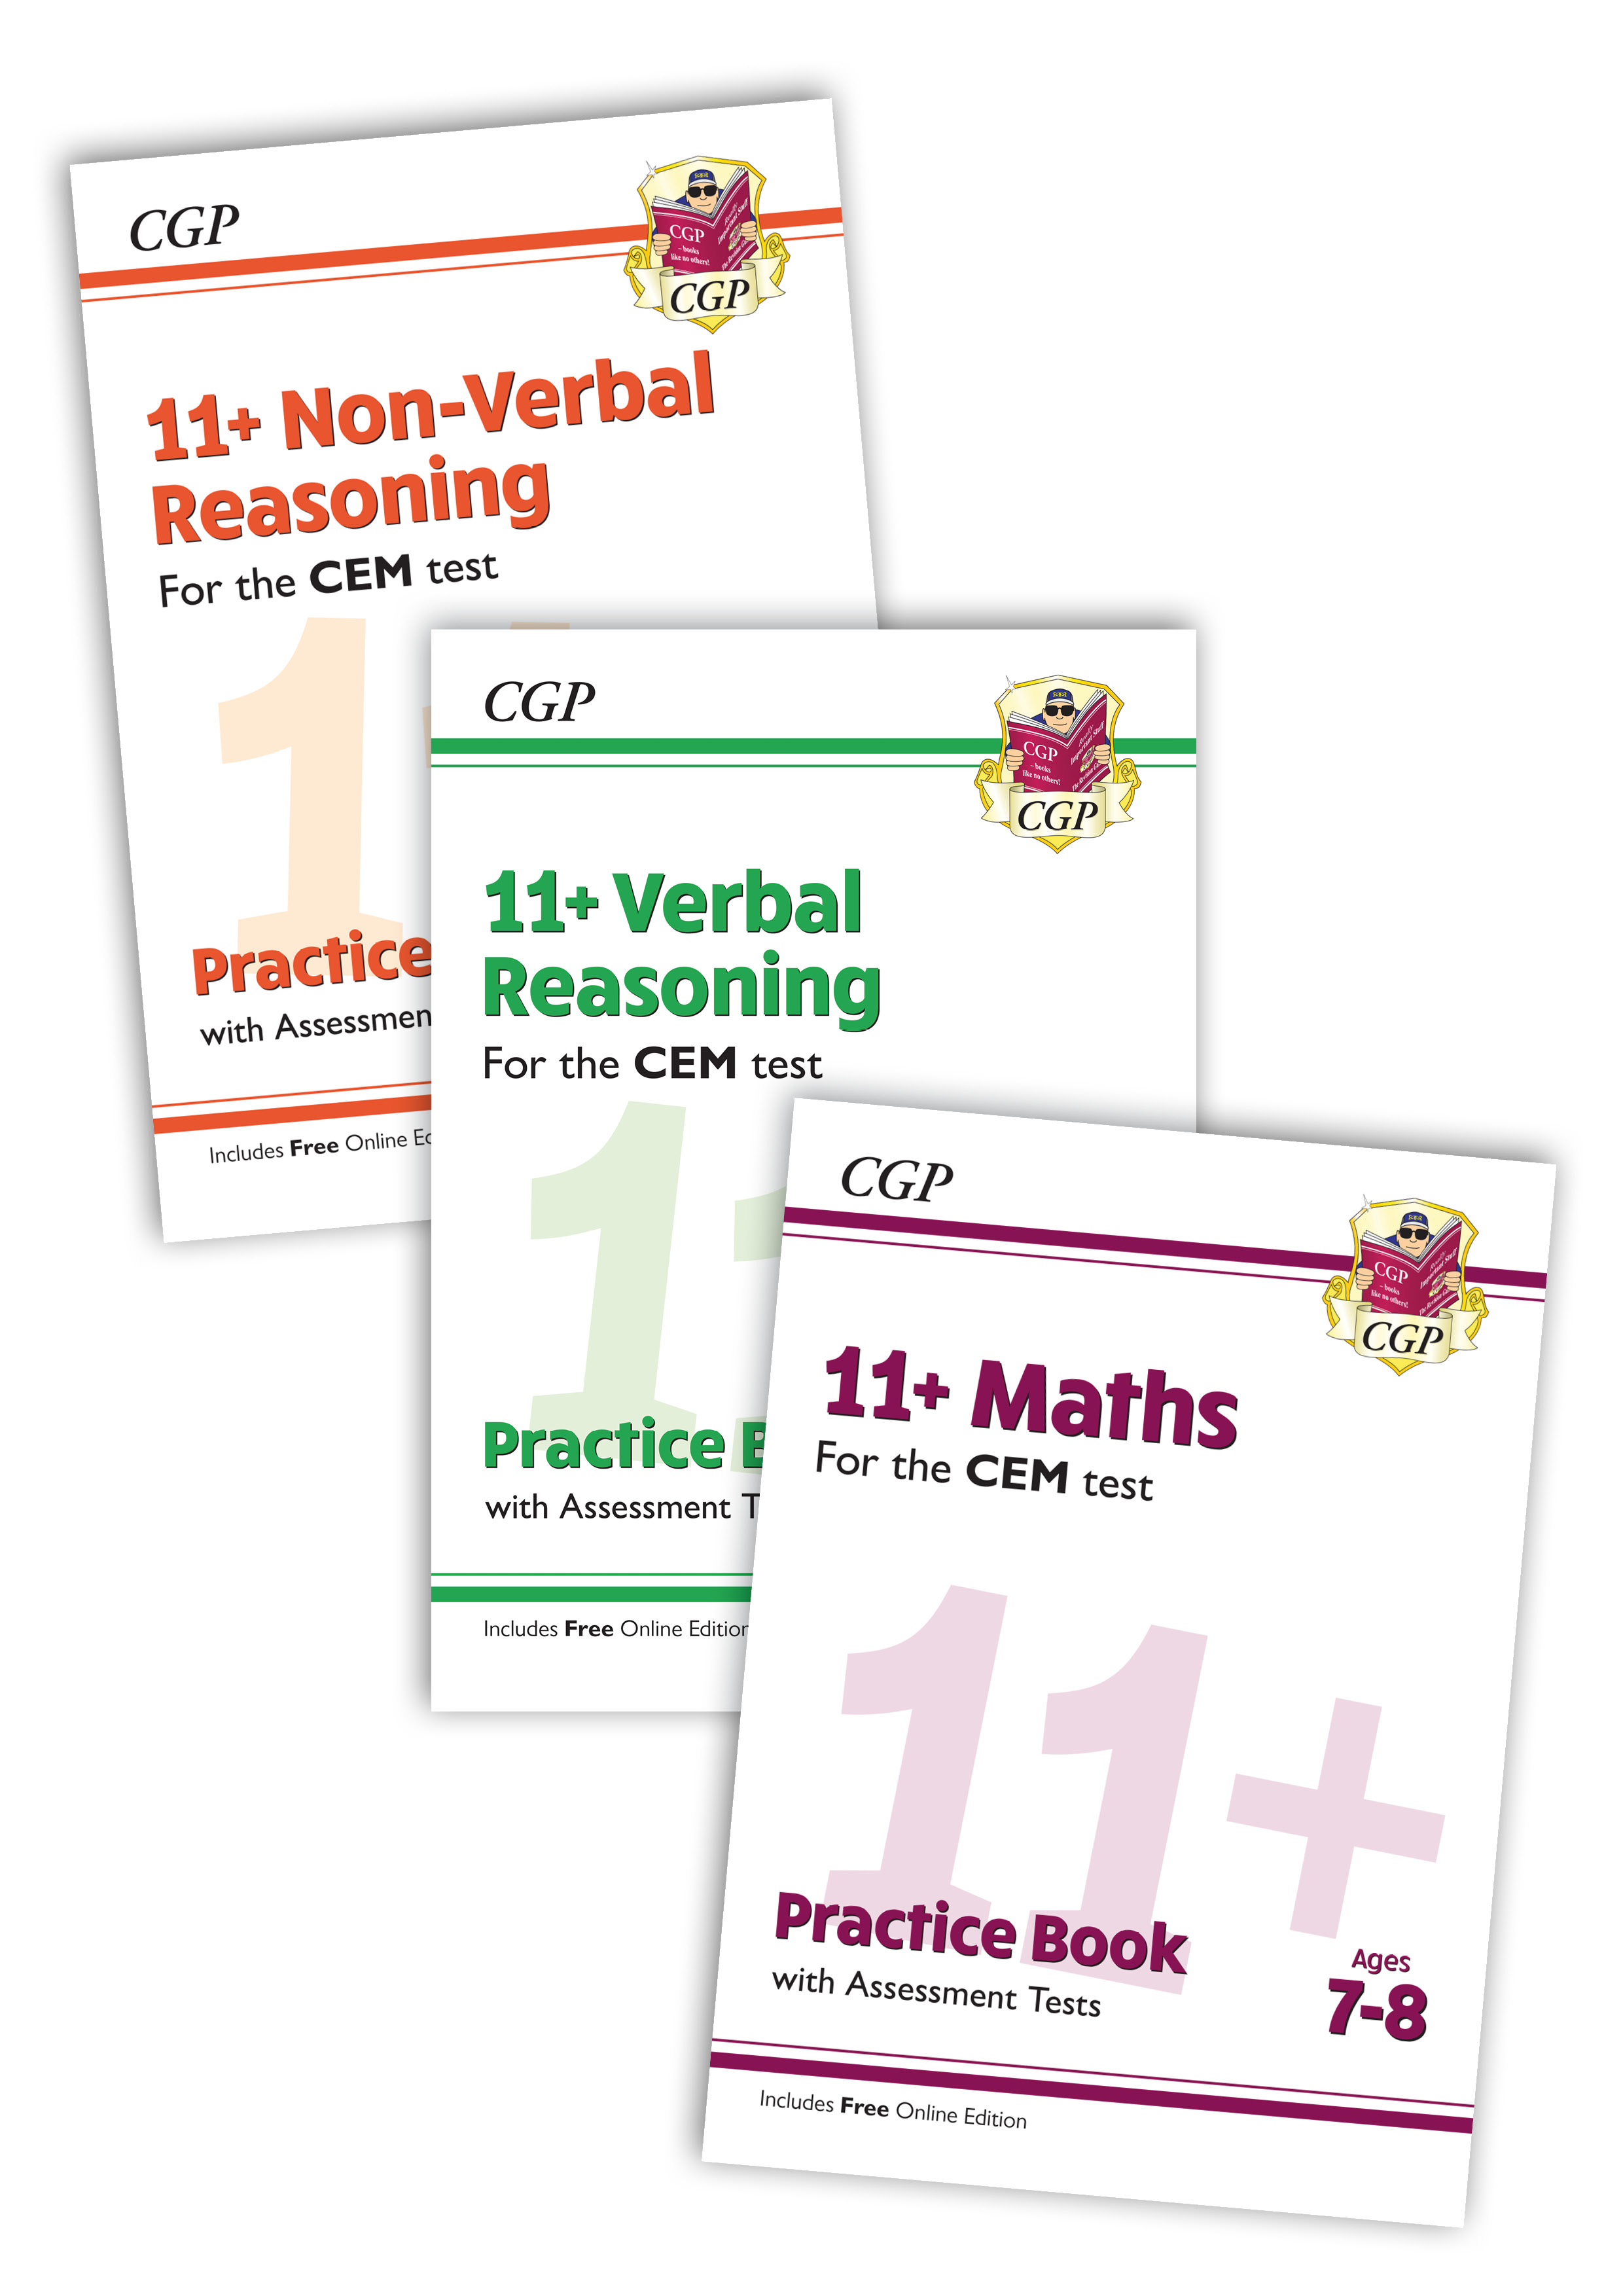 EL3BDE3 - 11+ CEM Practice 3-book Bundle - for Ages 7-8